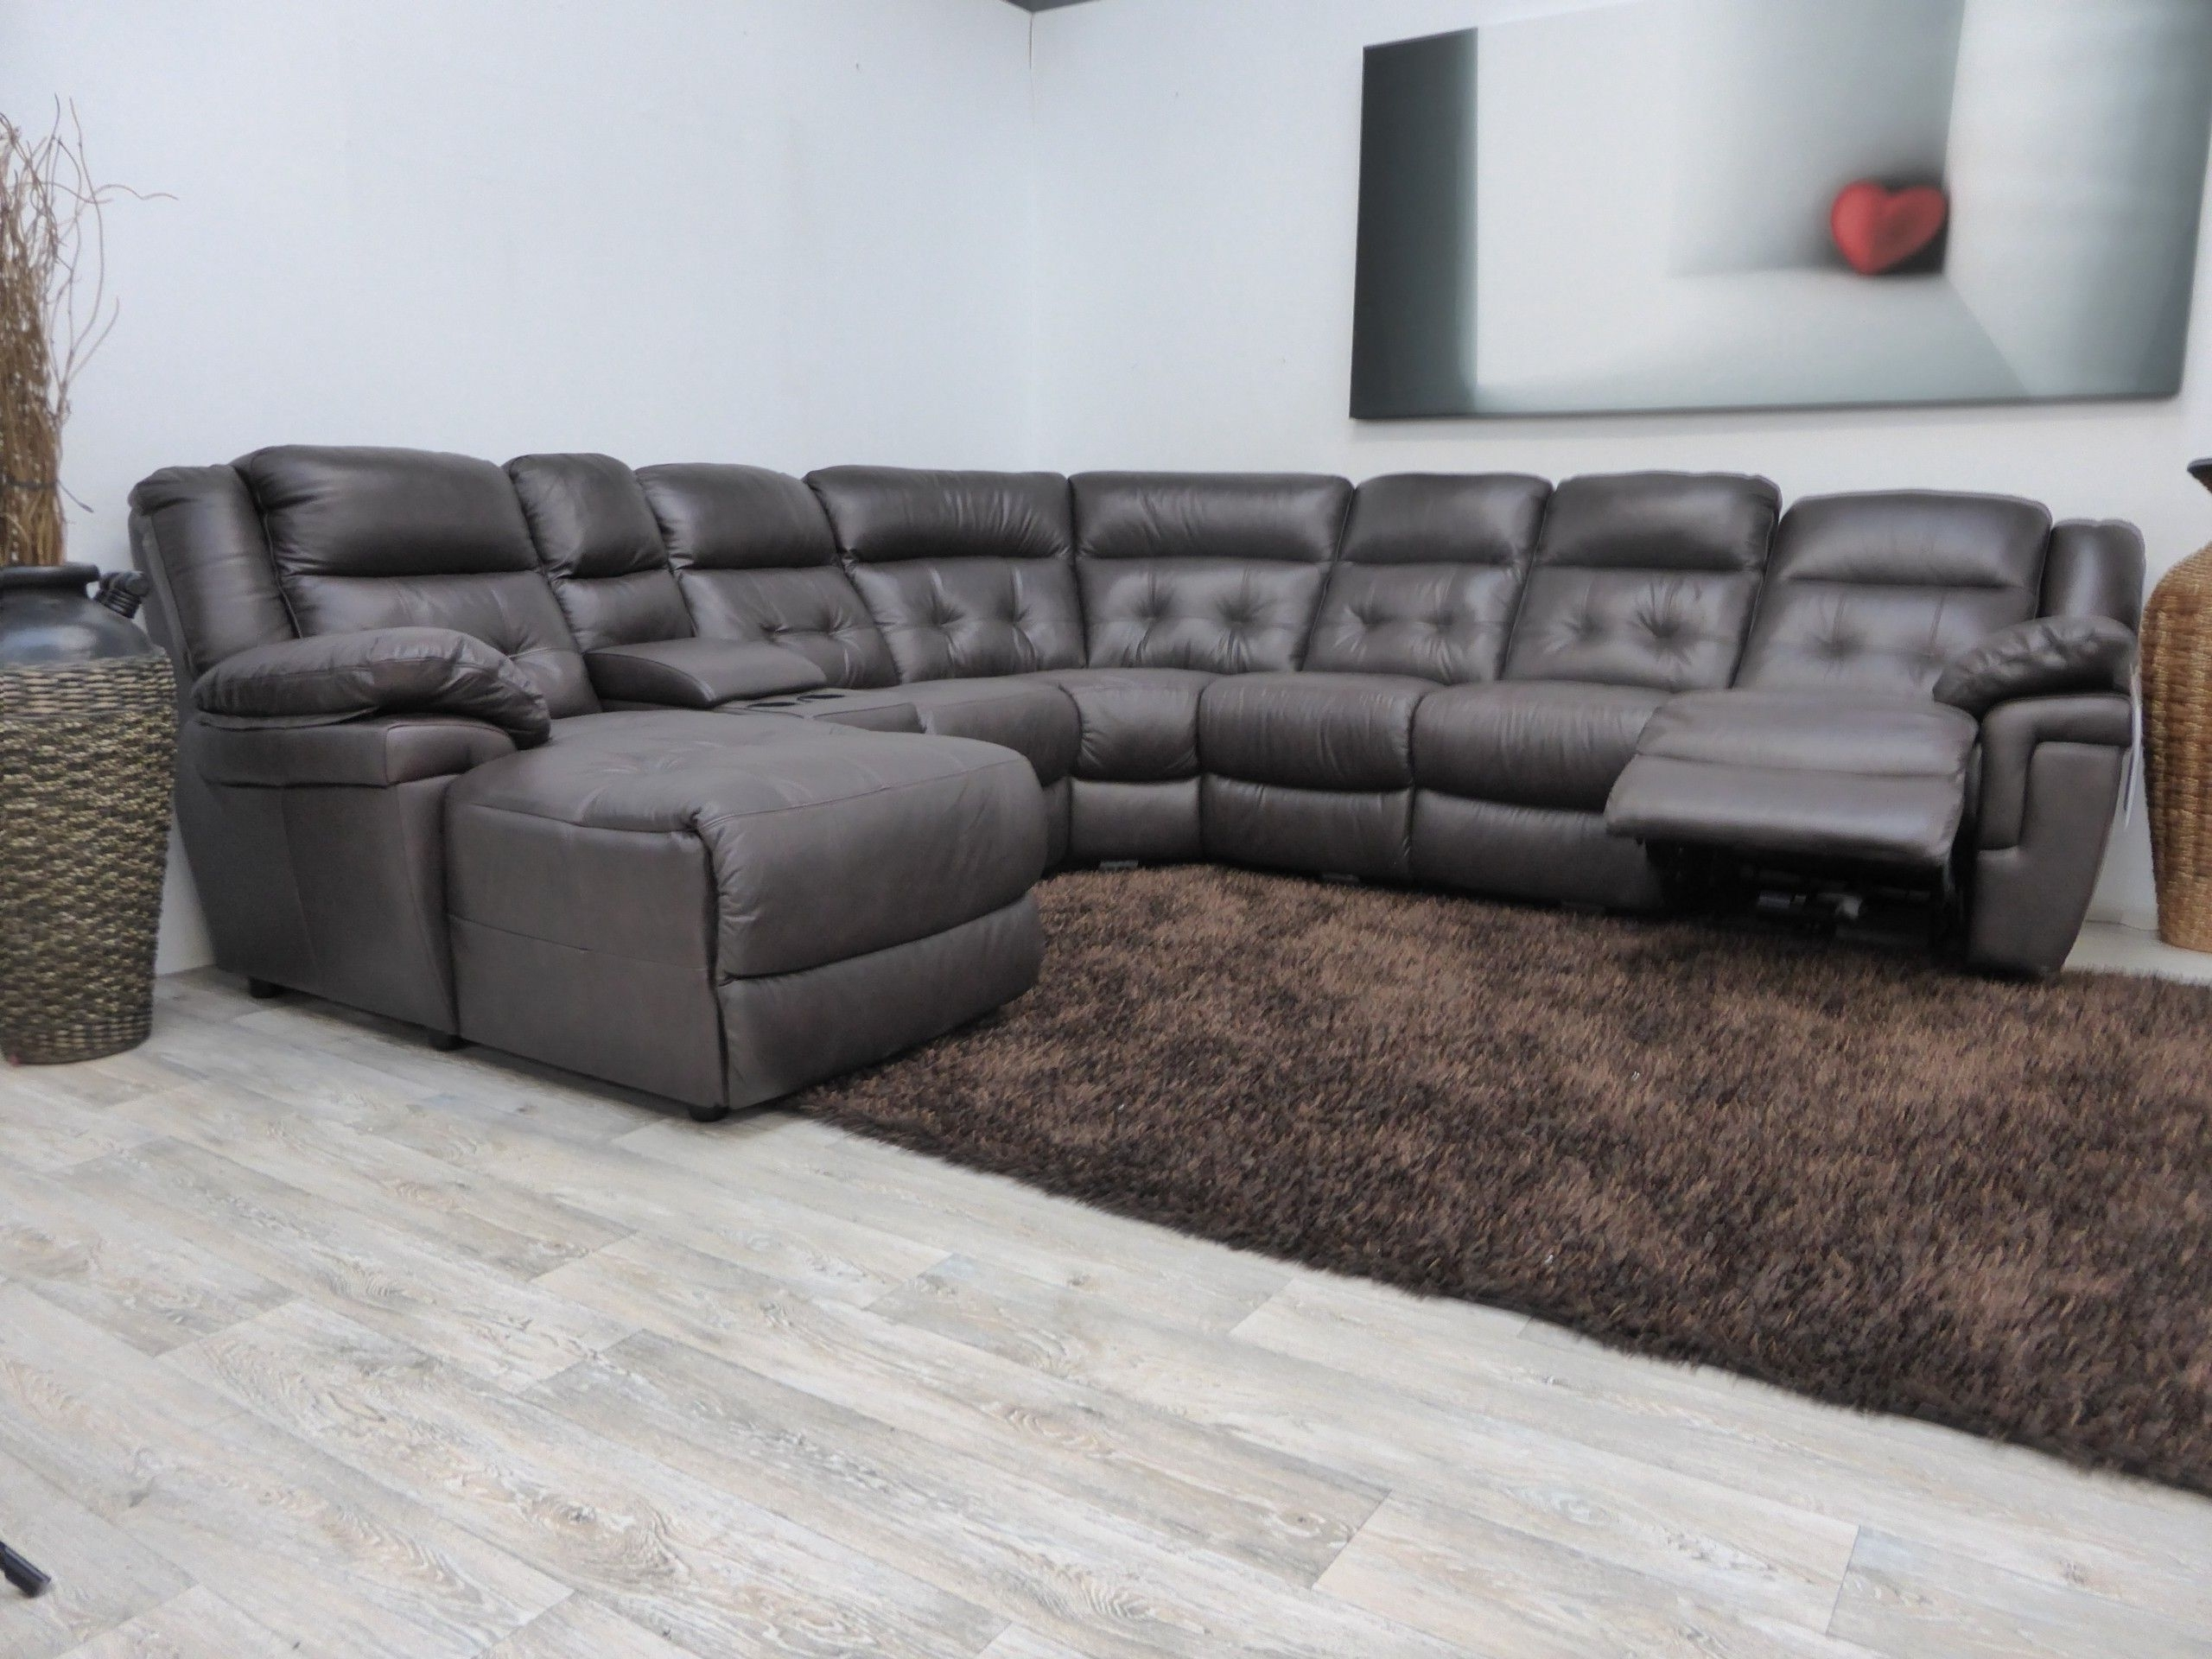 Most Current L Shaped Sofa Design With Black Upholstery Faux Leather Sofa Inside Lazy Boy Sectional Sofas (View 9 of 15)